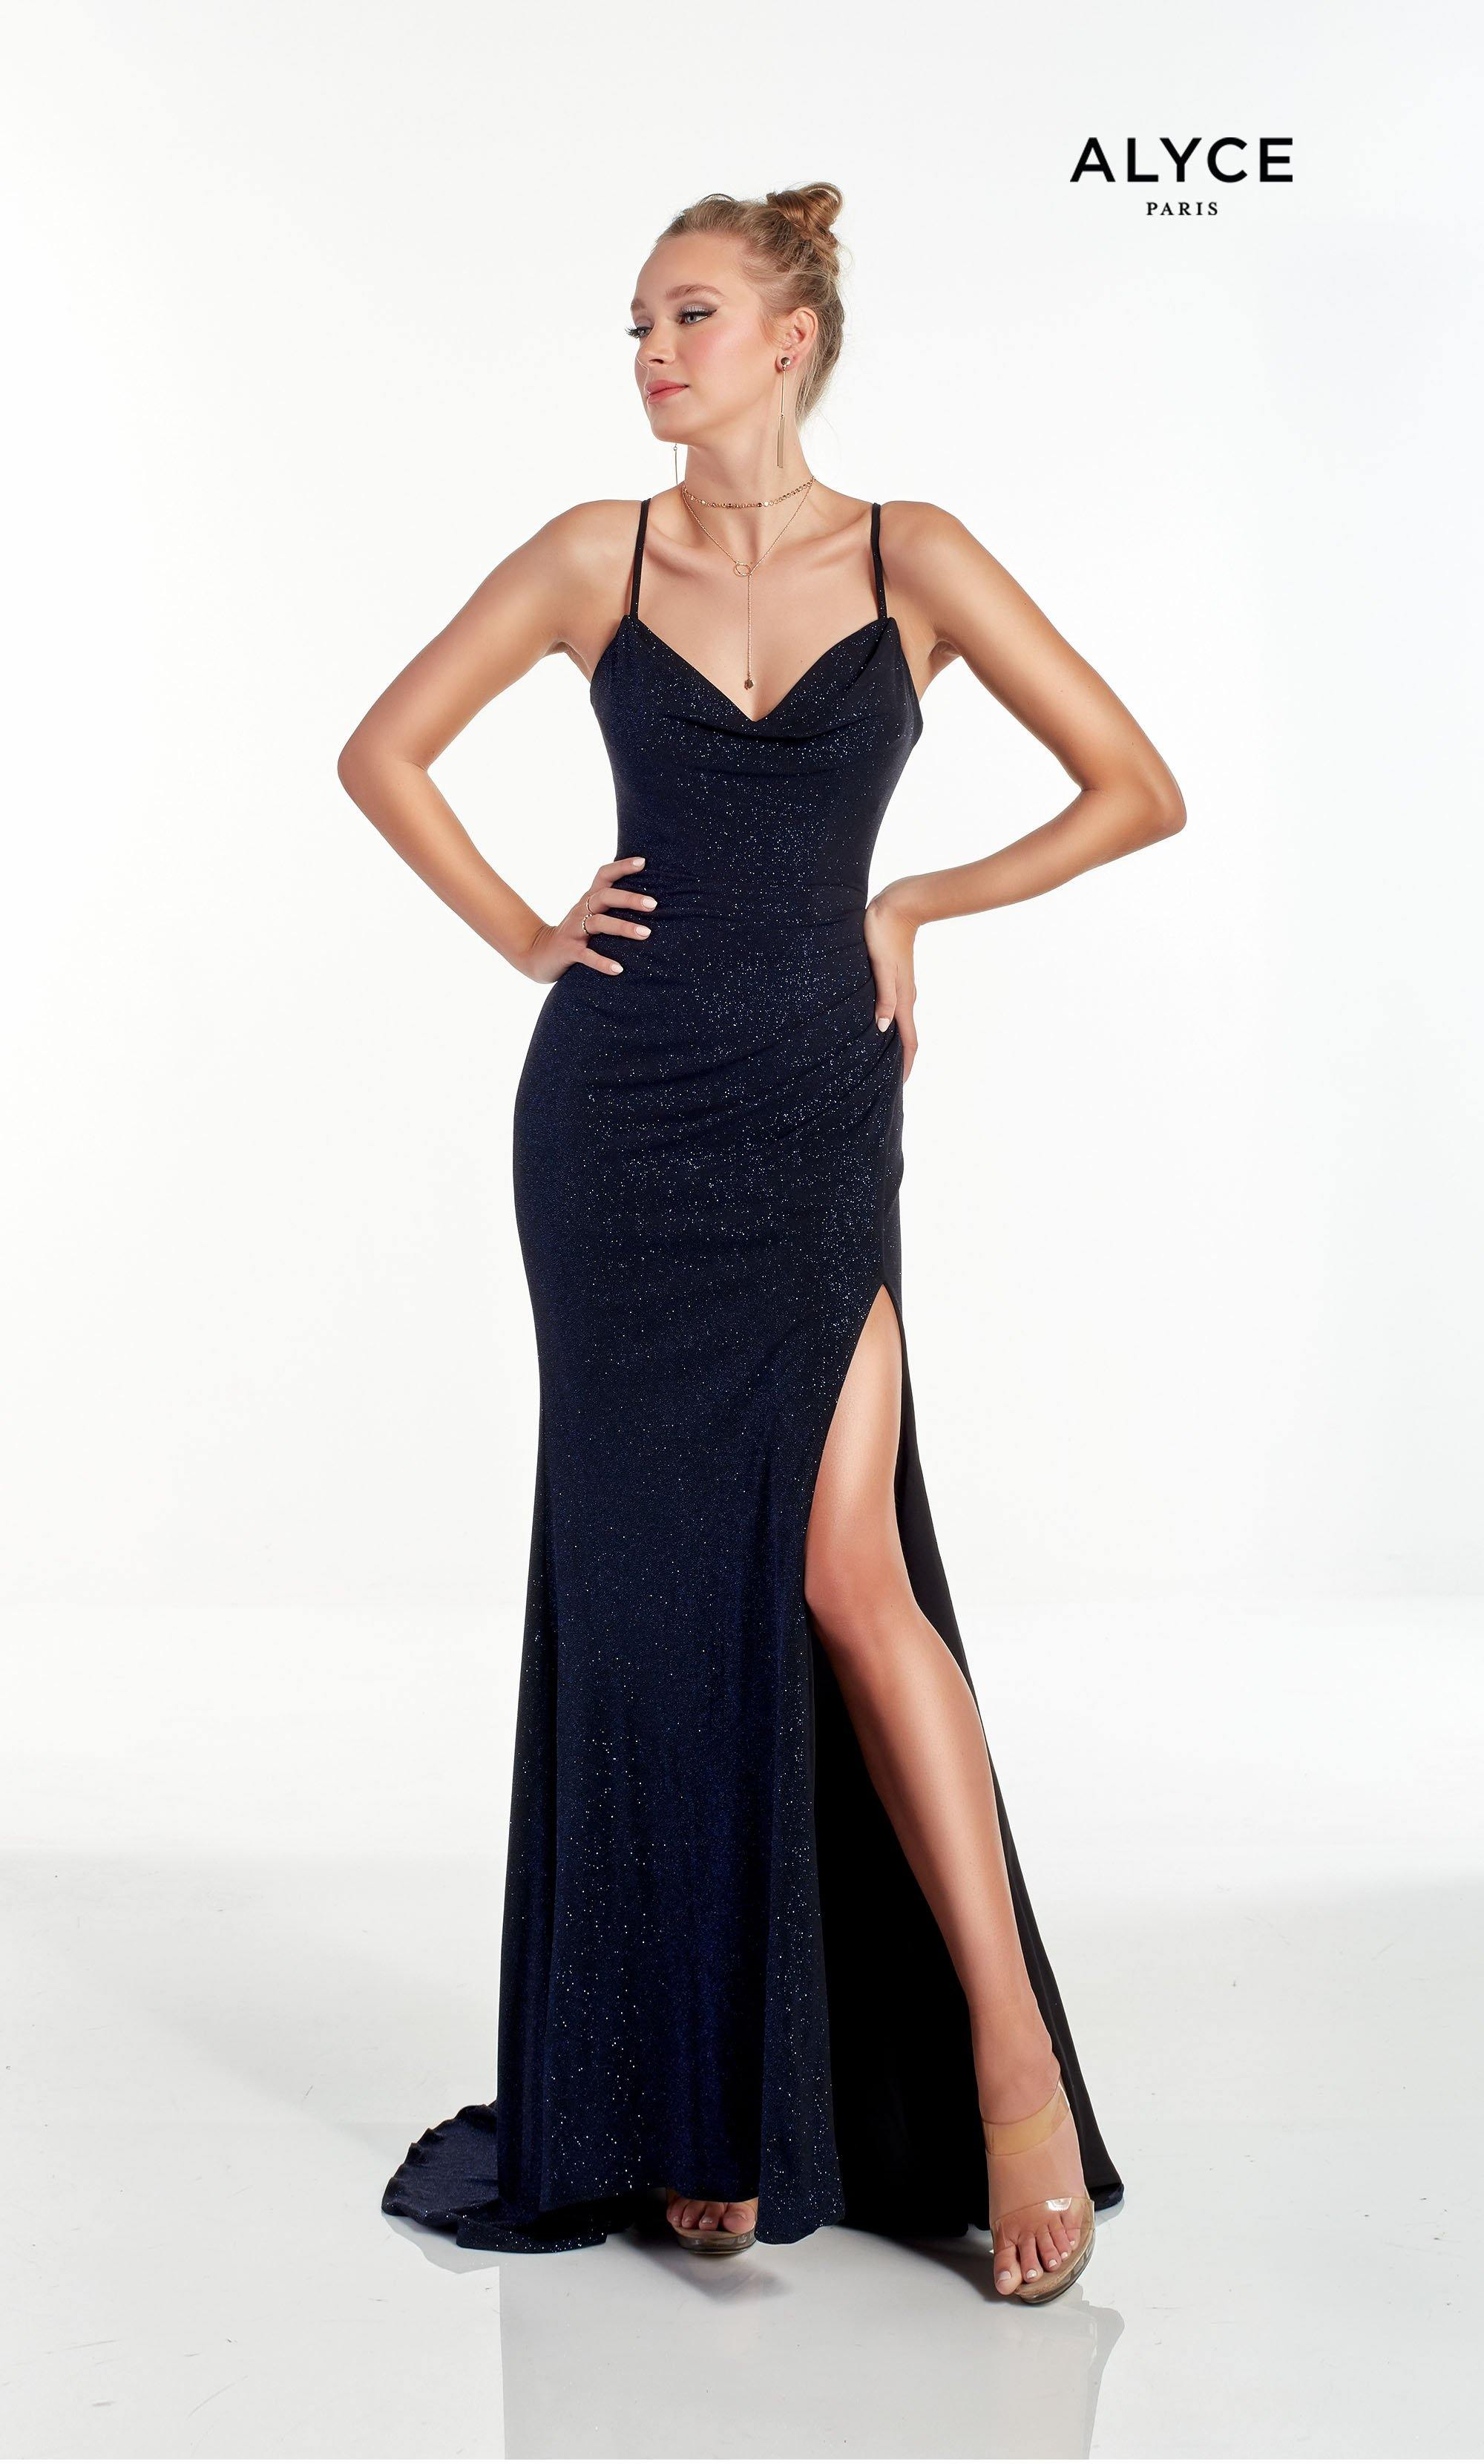 Cobalt Blue sparkle jersey evening dress with a cowl neckline and high slit